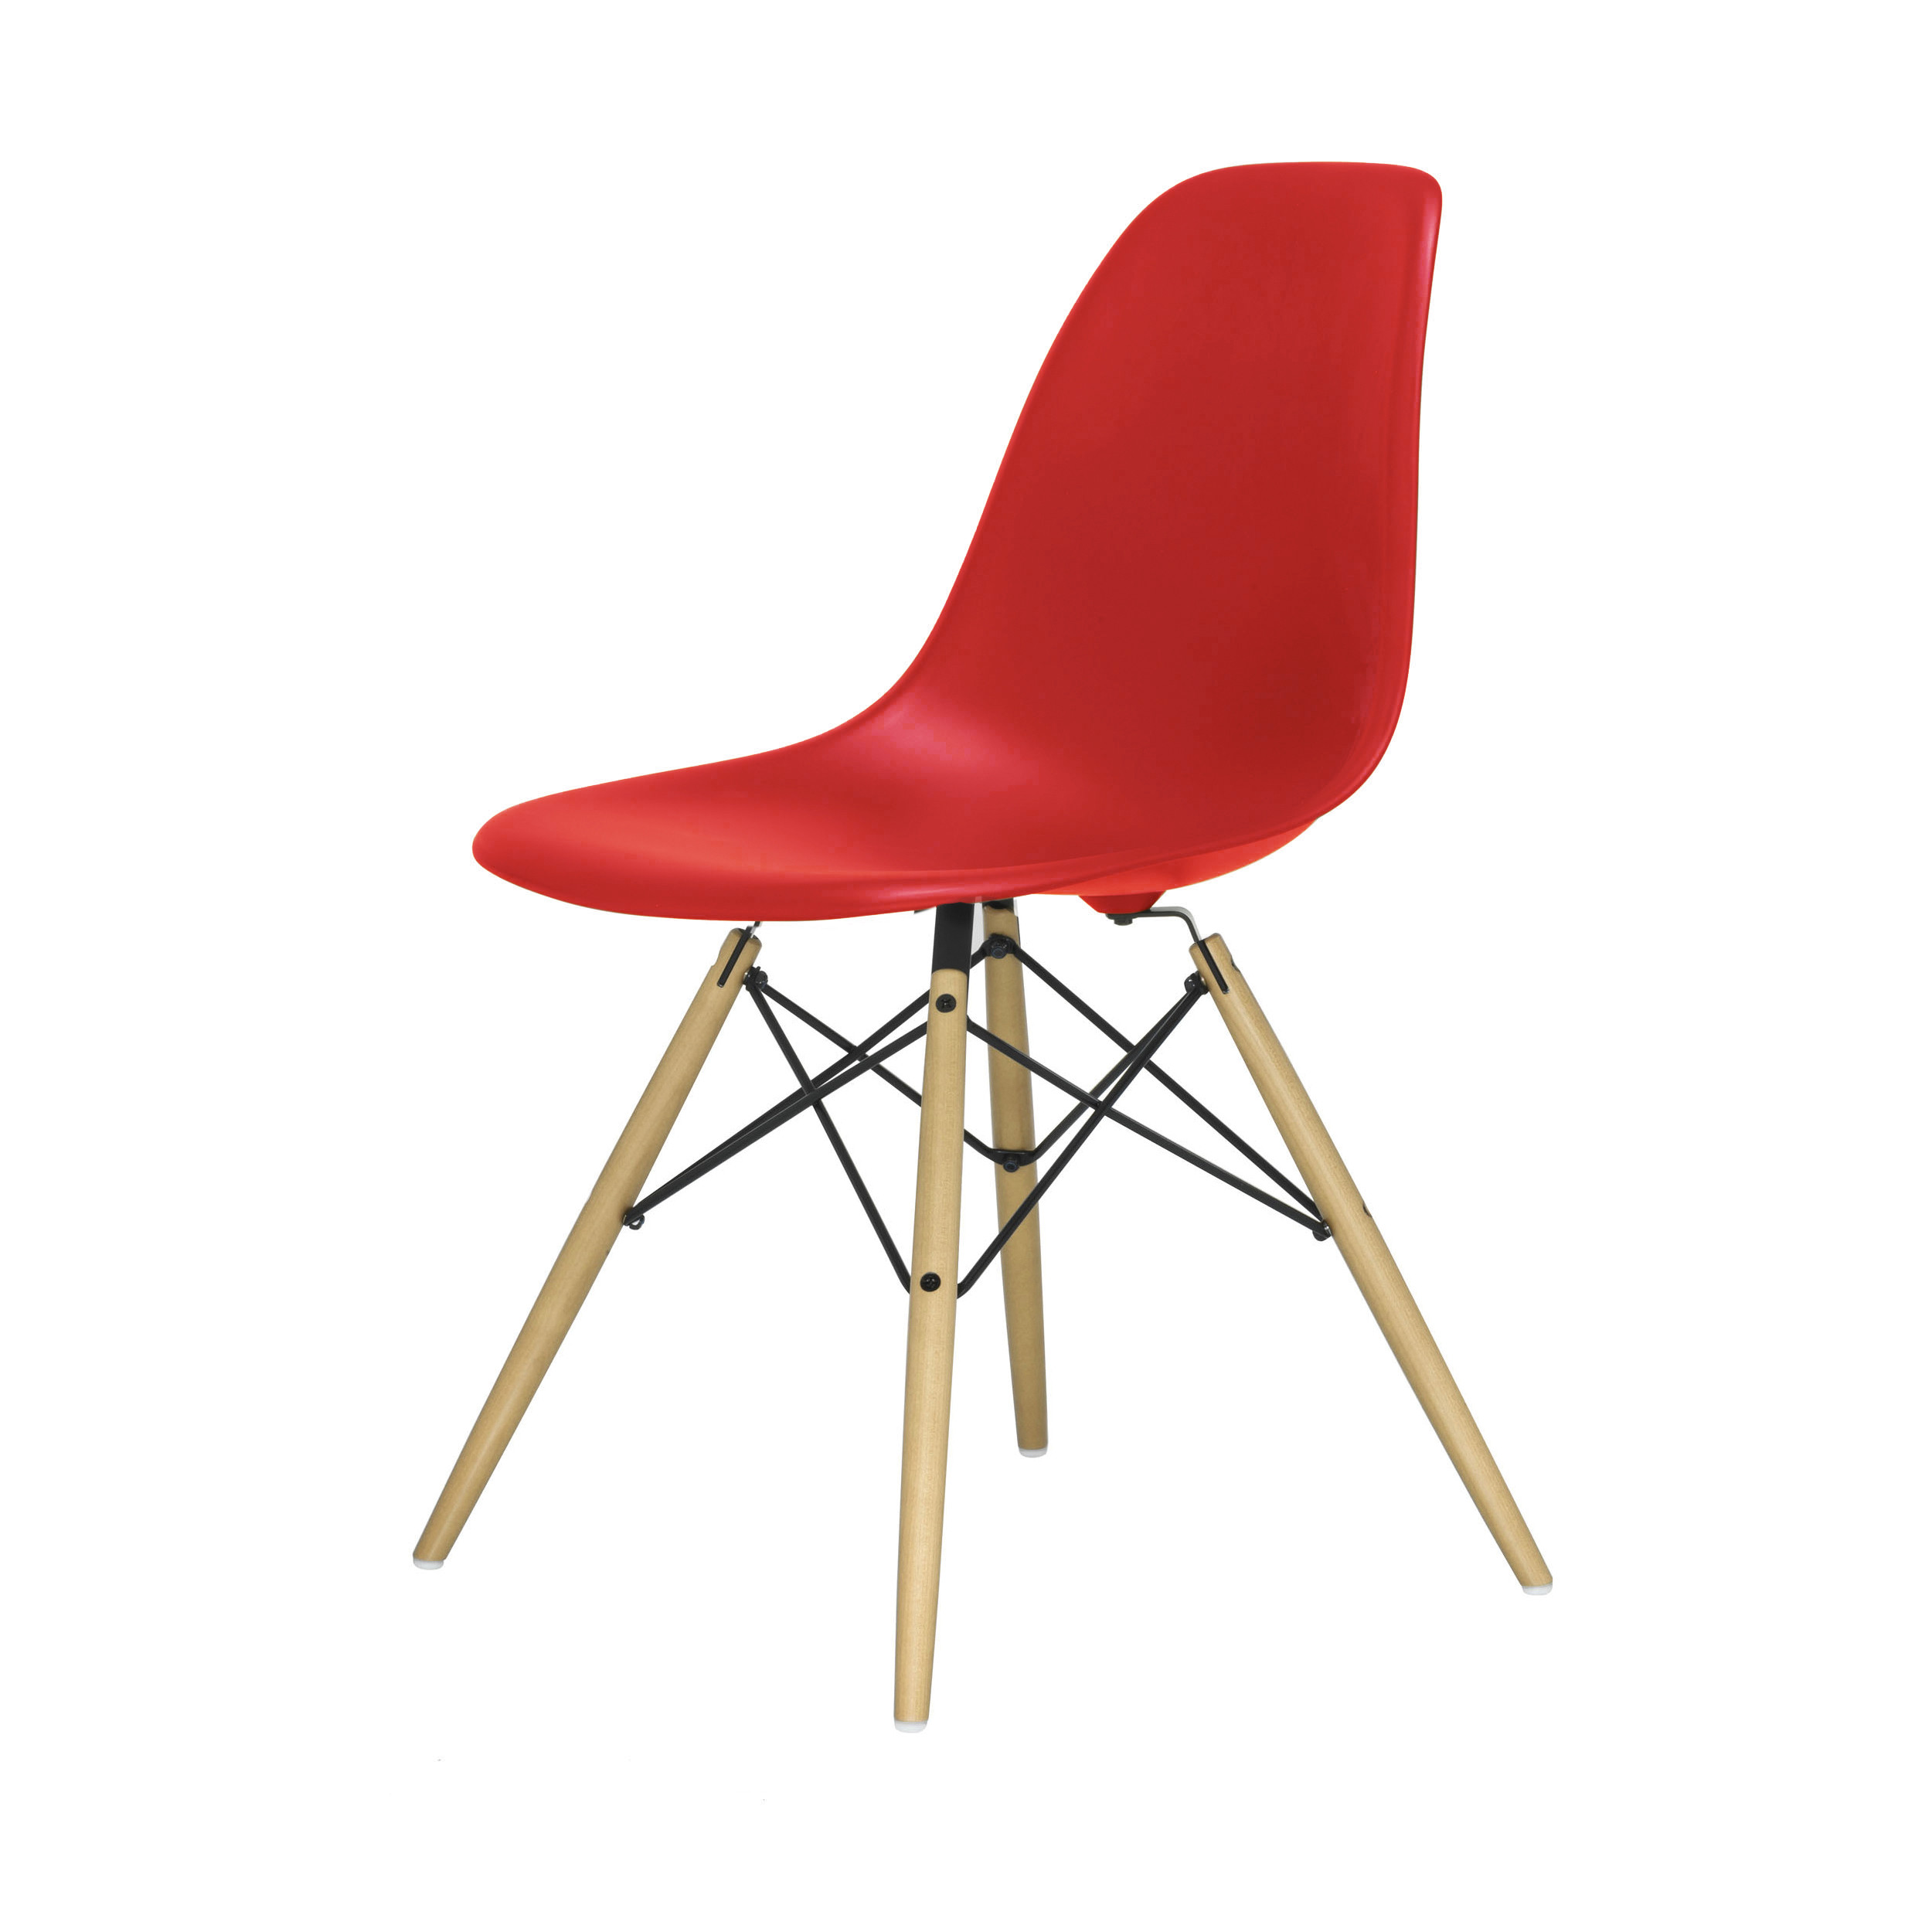 eames plastic side chair stuhl dsw mit kunststoffgleitern classic red ahorn. Black Bedroom Furniture Sets. Home Design Ideas